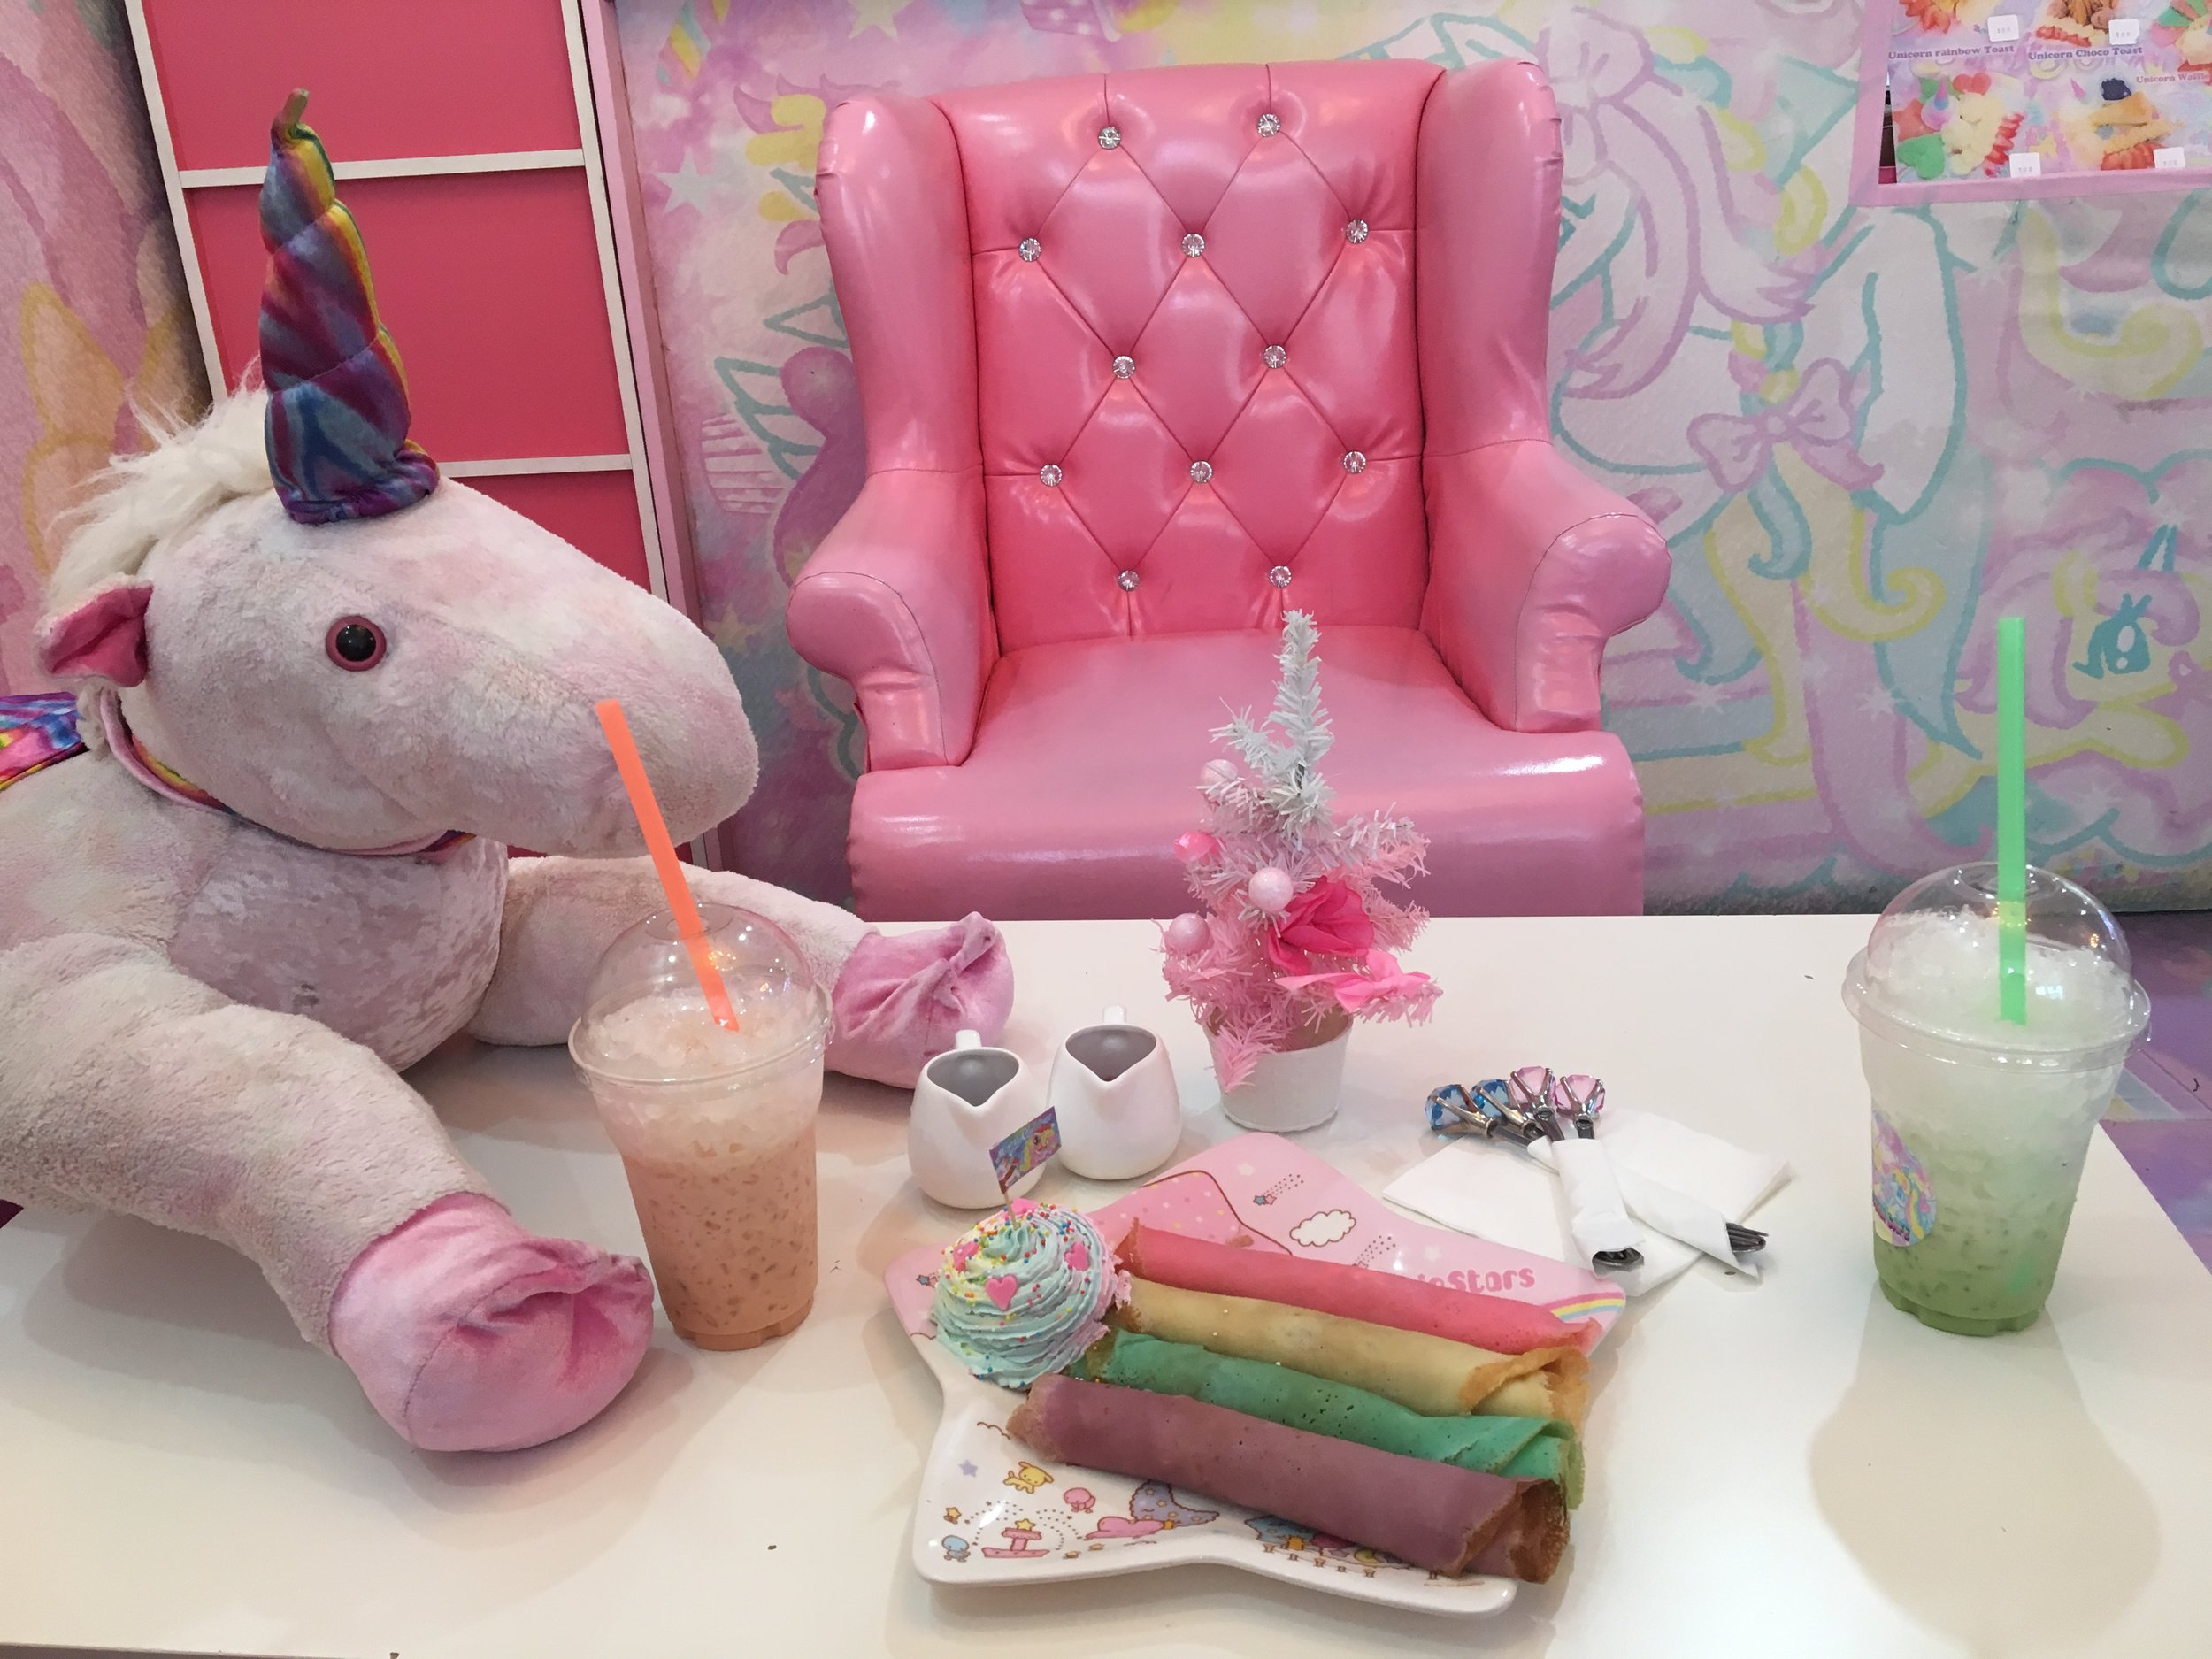 My magical feast at the Unicorn Cafe